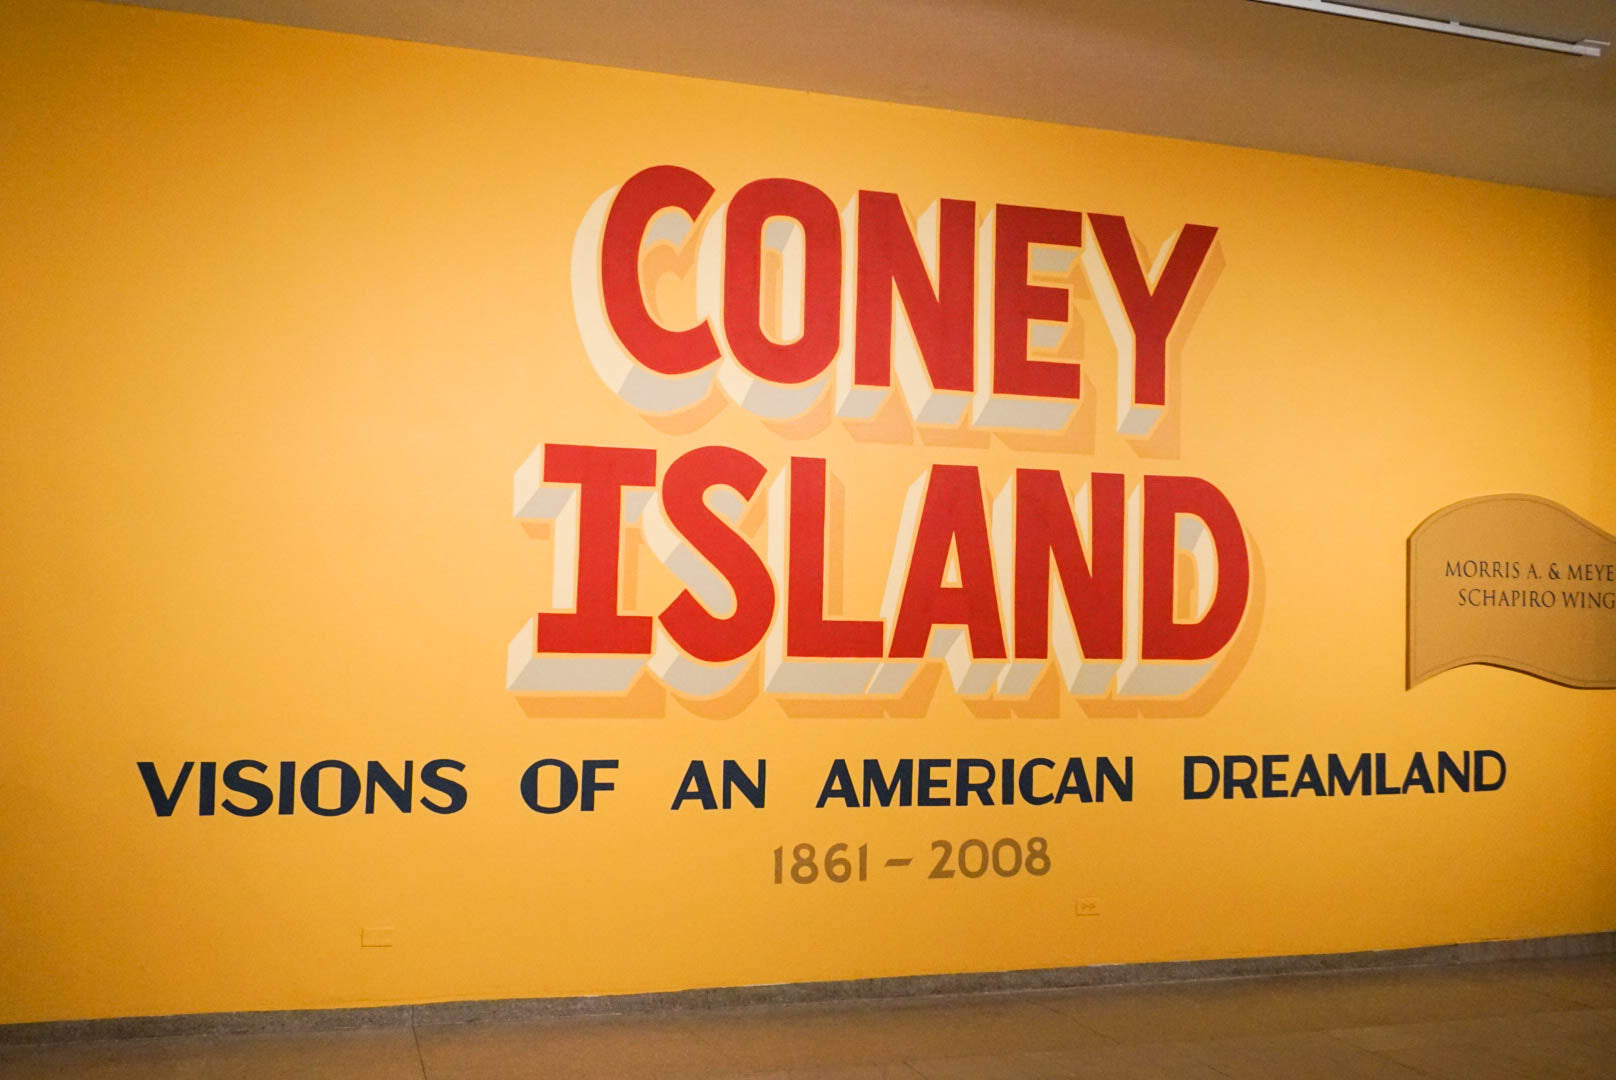 Stephen Powers: Coney Island Is Still Dreamland (To a Seagull)